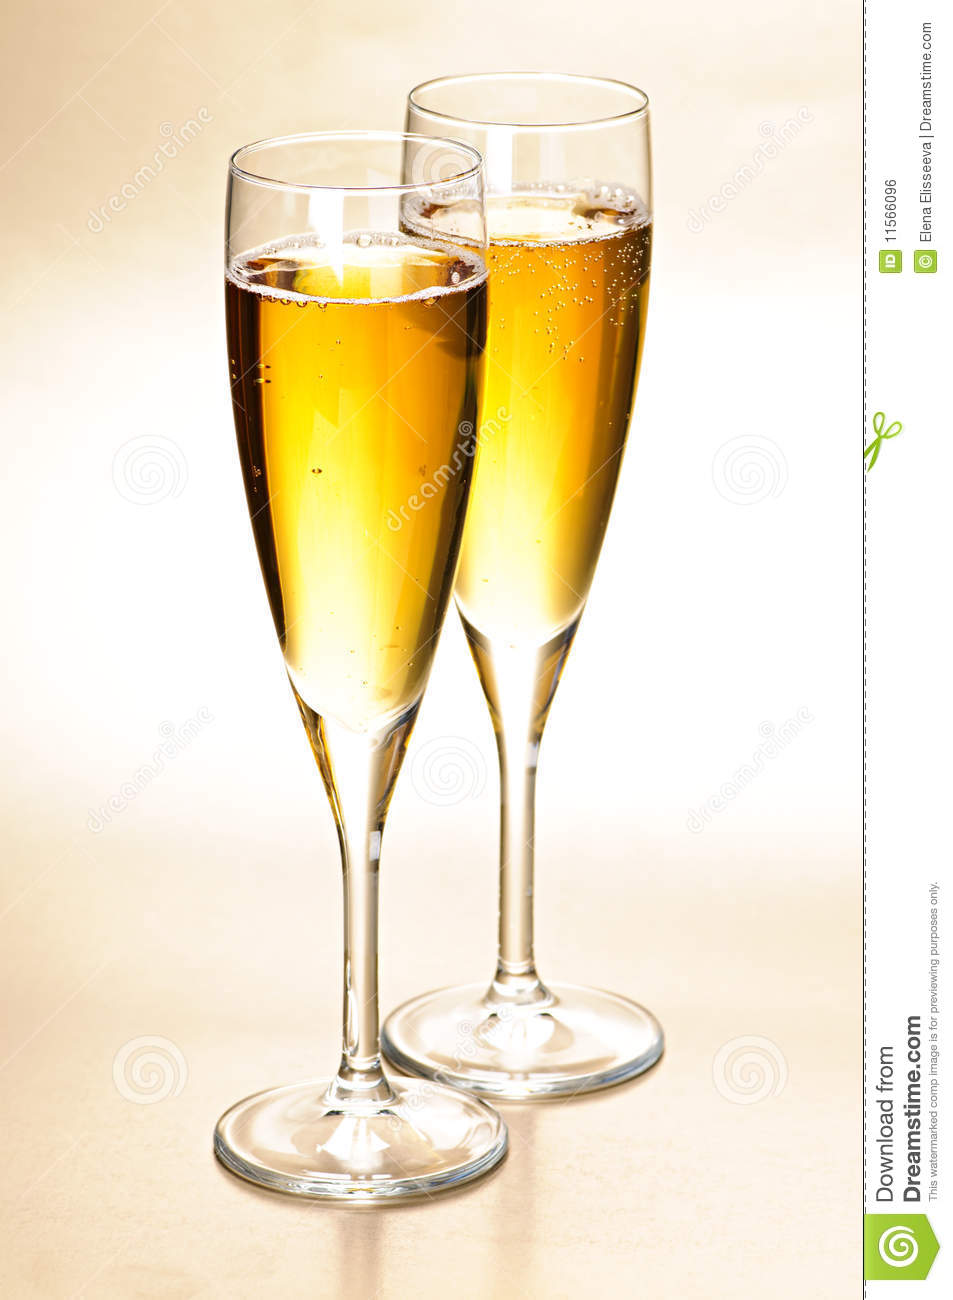 champagne glasses stock photo image of festivities flute 11566096. Black Bedroom Furniture Sets. Home Design Ideas